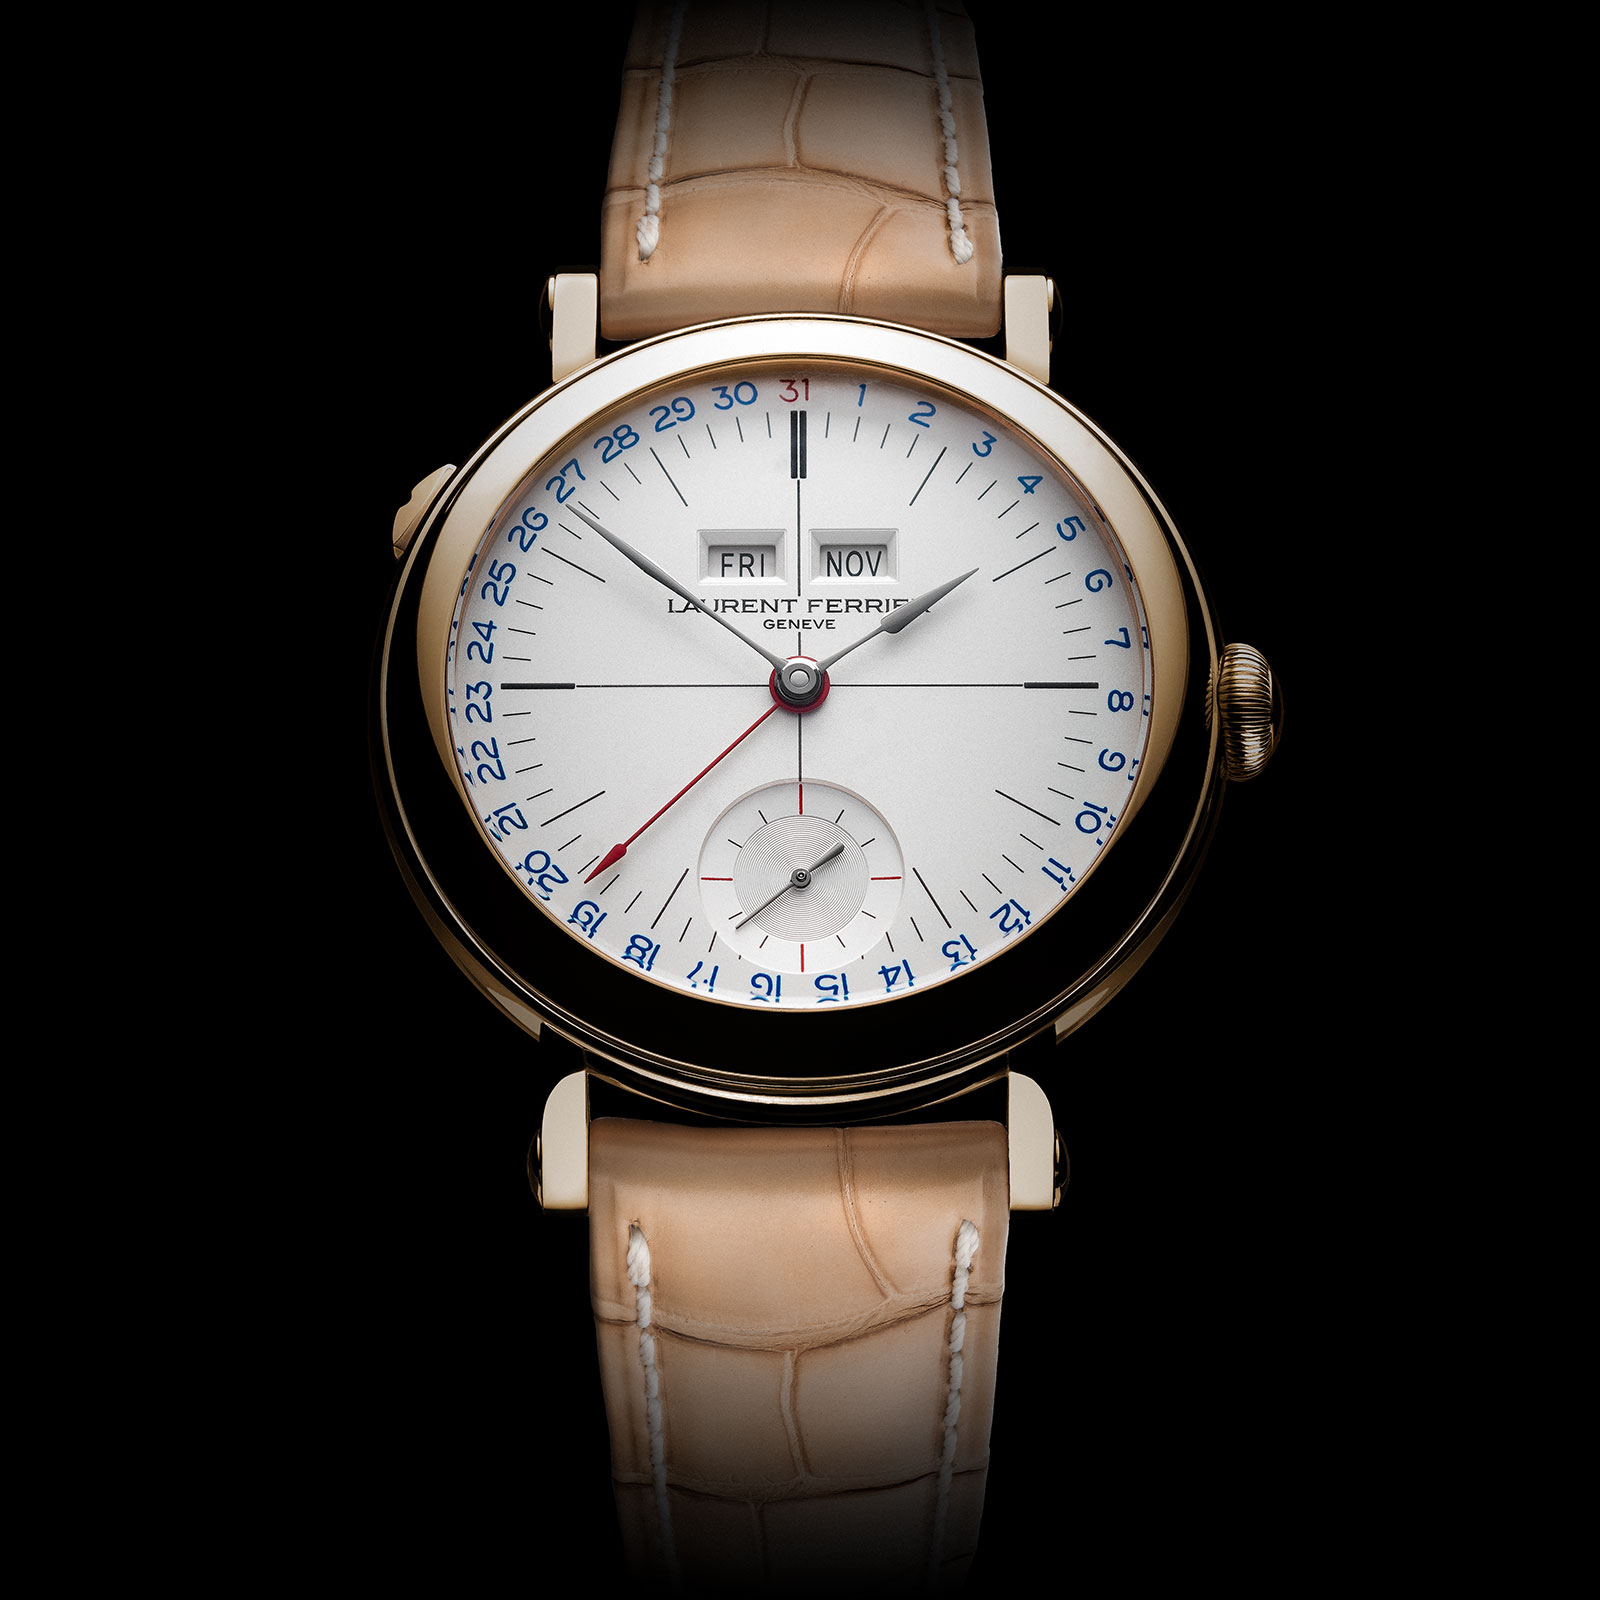 Laurent Ferrier Annual Calendar Montre Ecole opaline 3